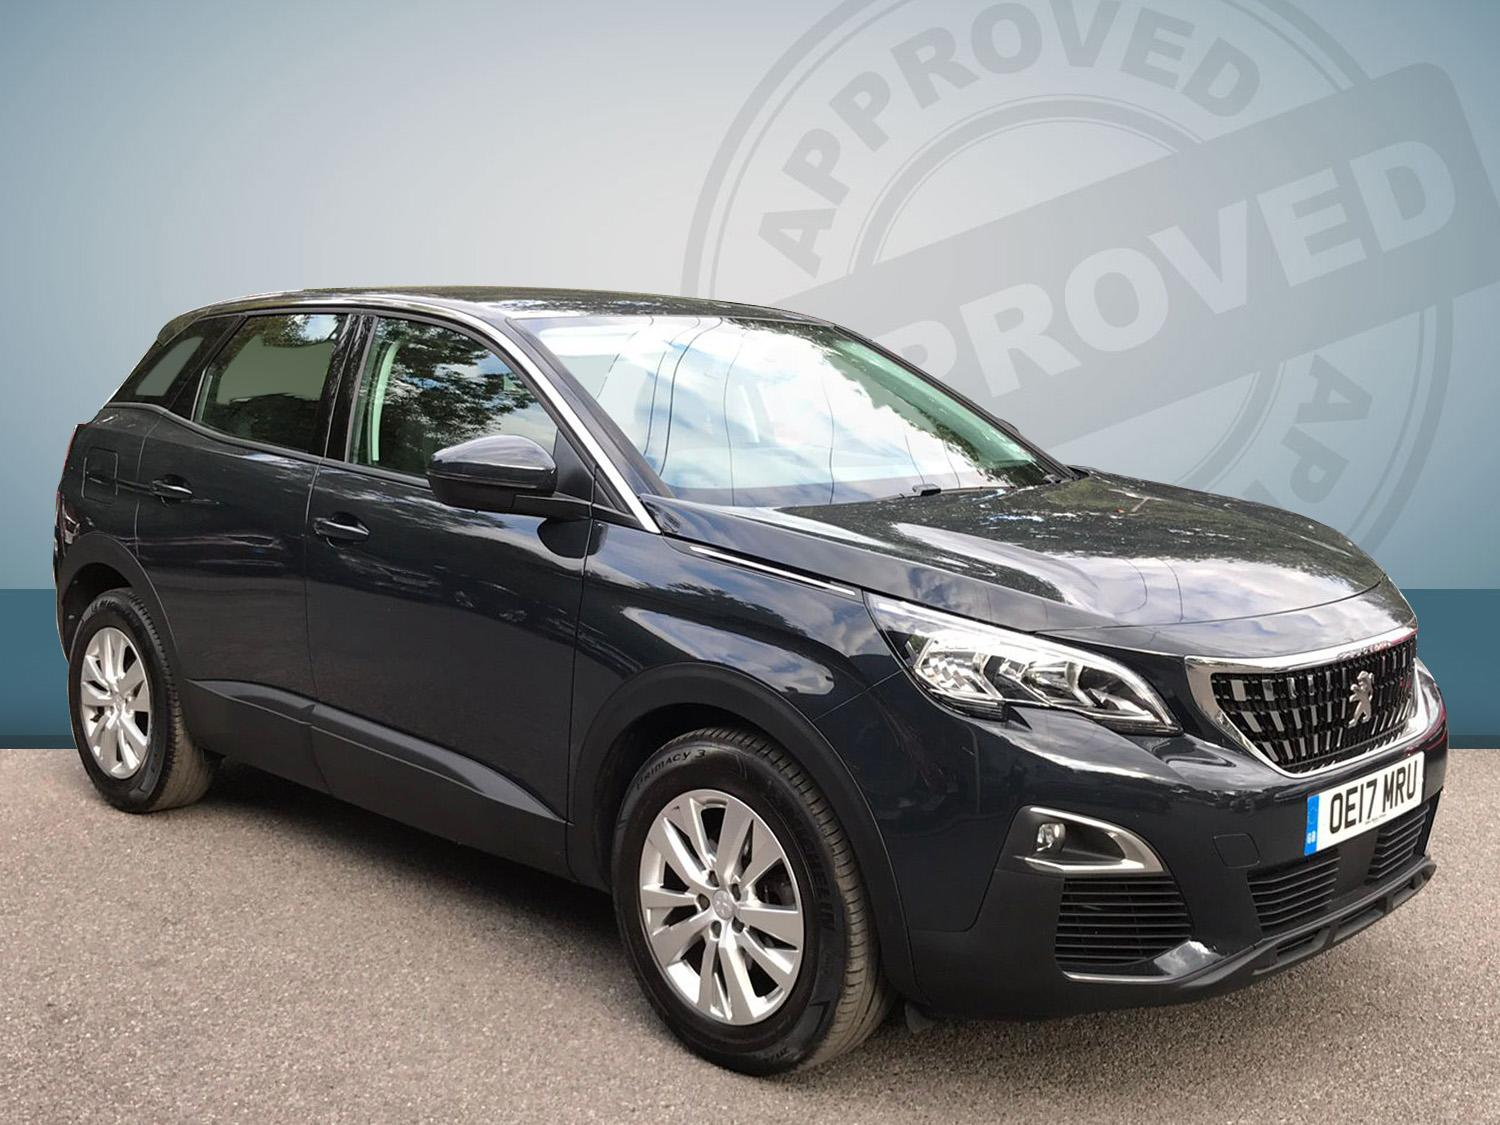 Peugeot 3008 1.2 Active S/s Hatchback Petrol Grey